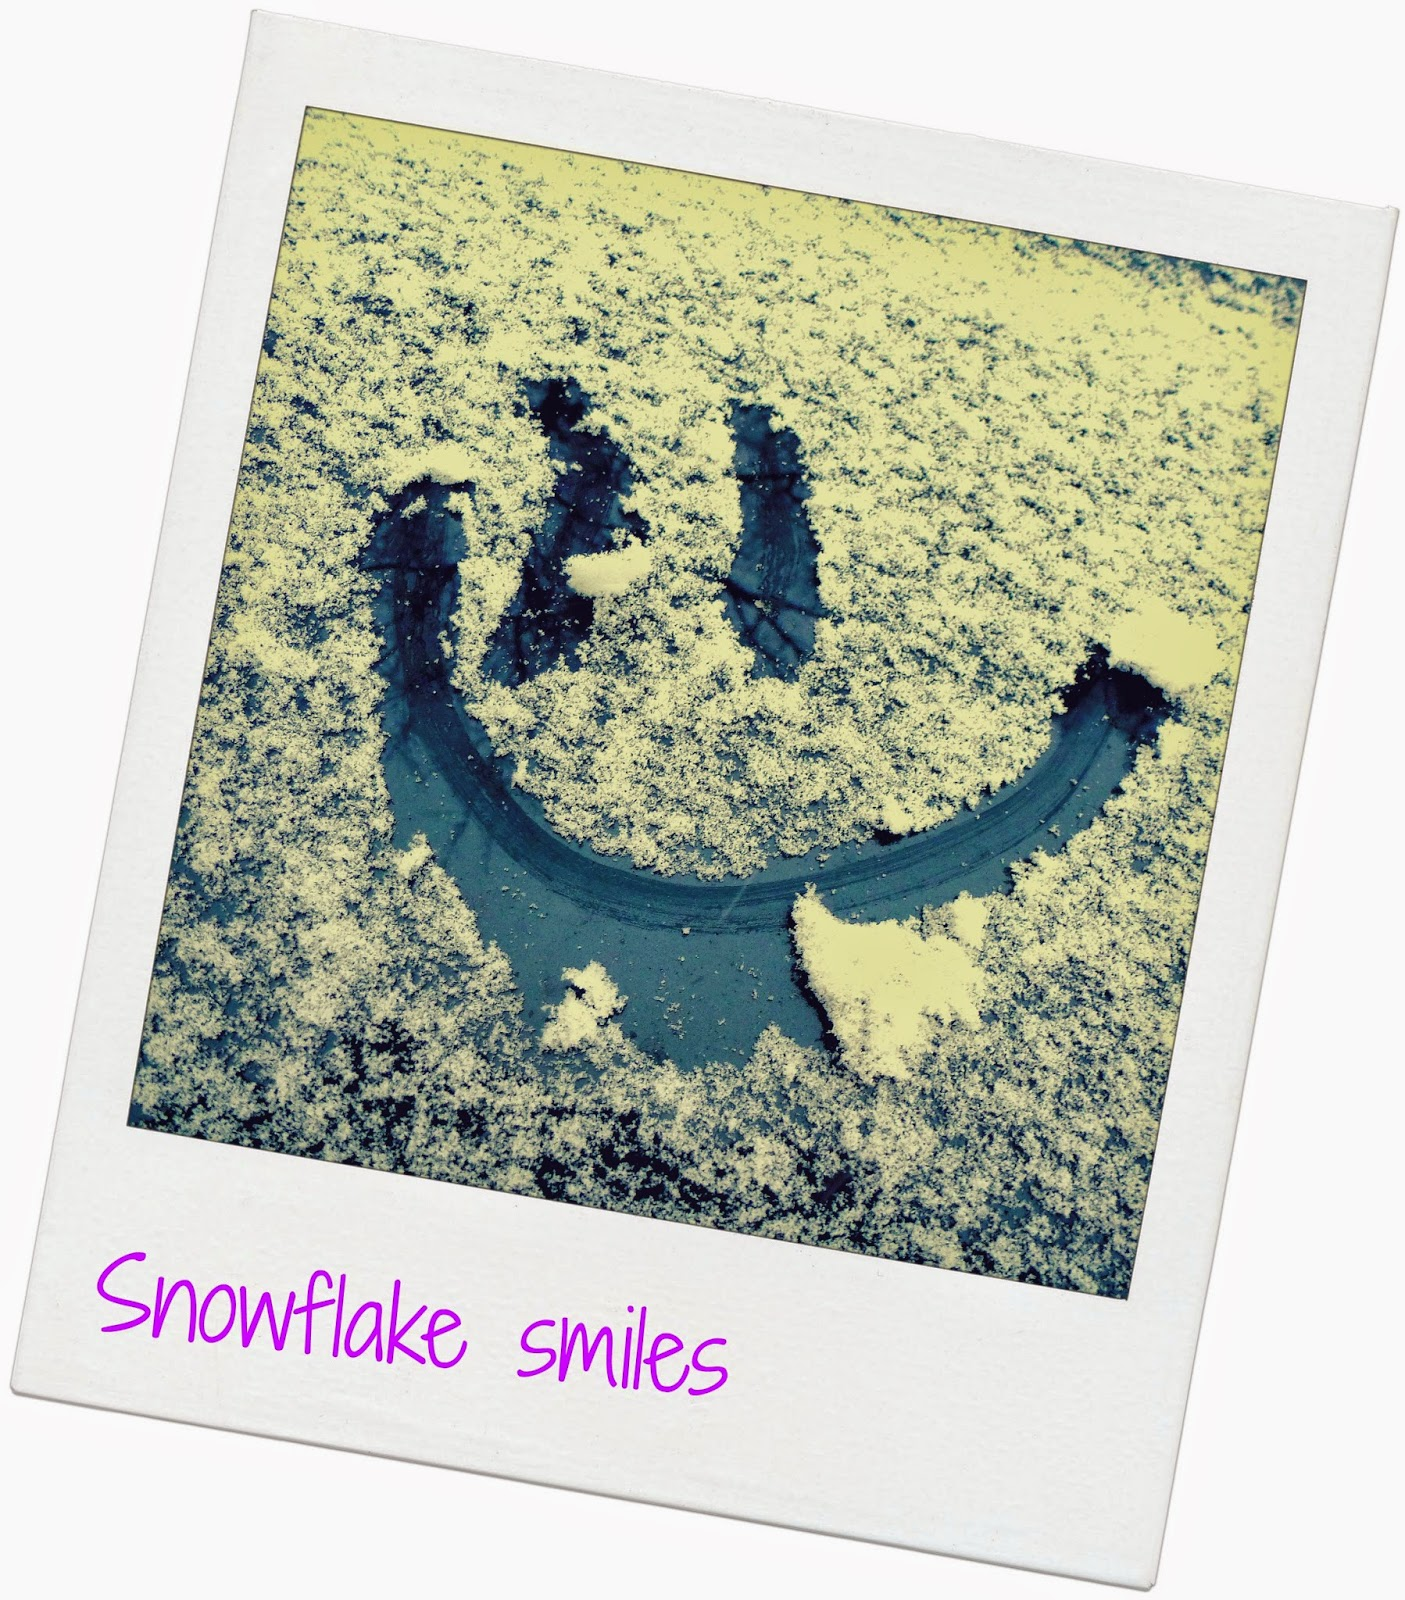 snowflake smiles love snow from MommysPinkieLipgloss.blogspot.com